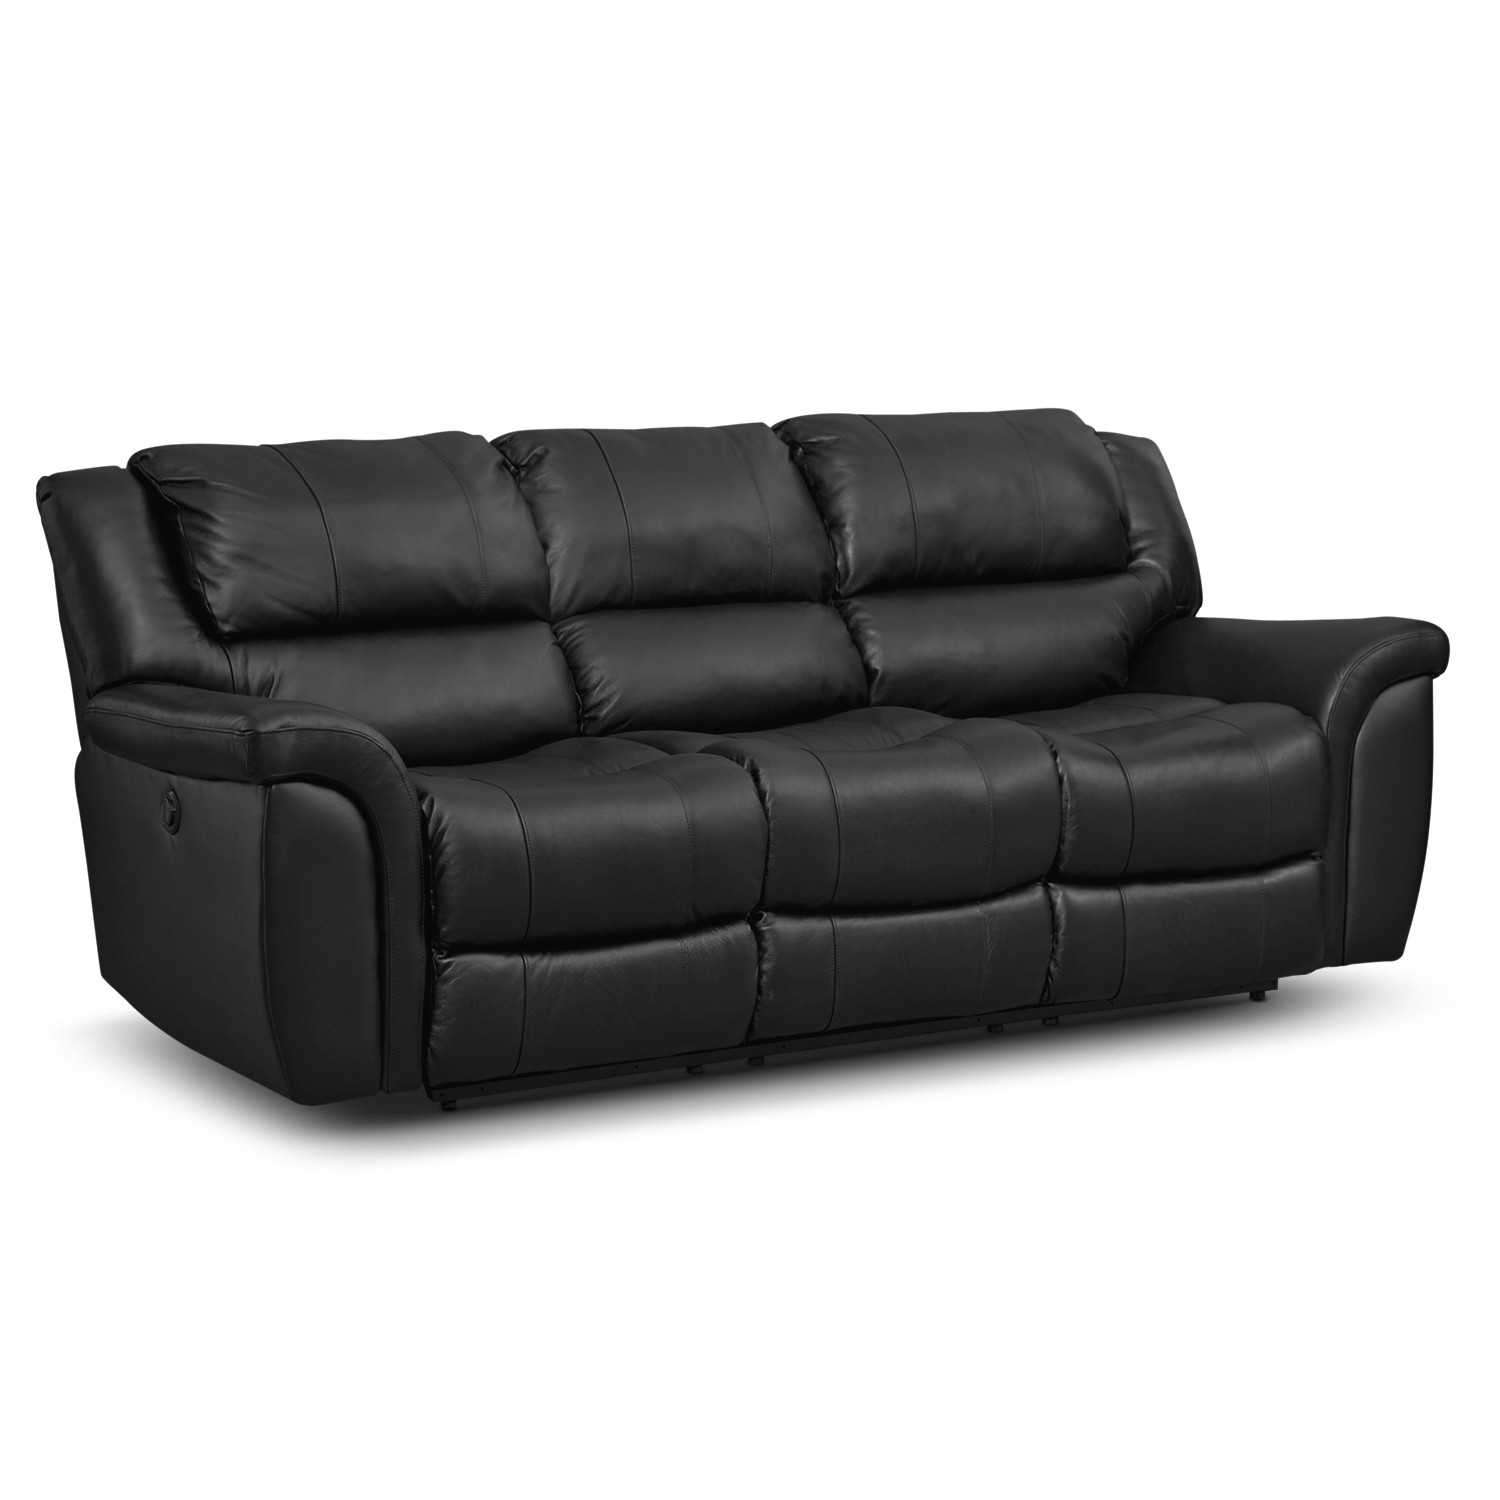 Category: Interior 0 | Home And Interior Within Aquarius Dark Grey Sofa Chairs (View 24 of 25)